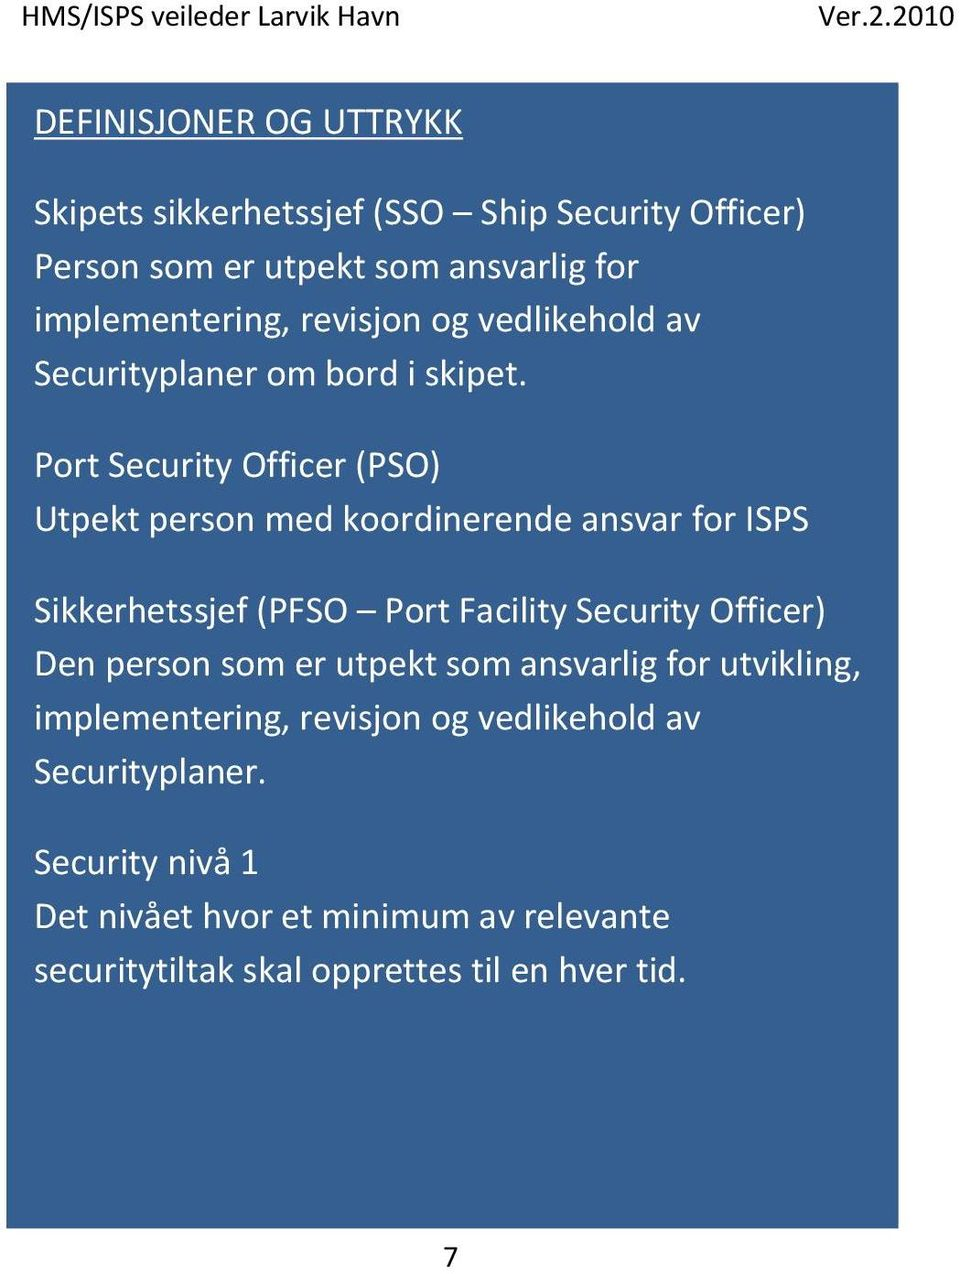 Port Security Officer (PSO) Utpekt person med koordinerende ansvar for ISPS Sikkerhetssjef (PFSO Port Facility Security Officer) Den